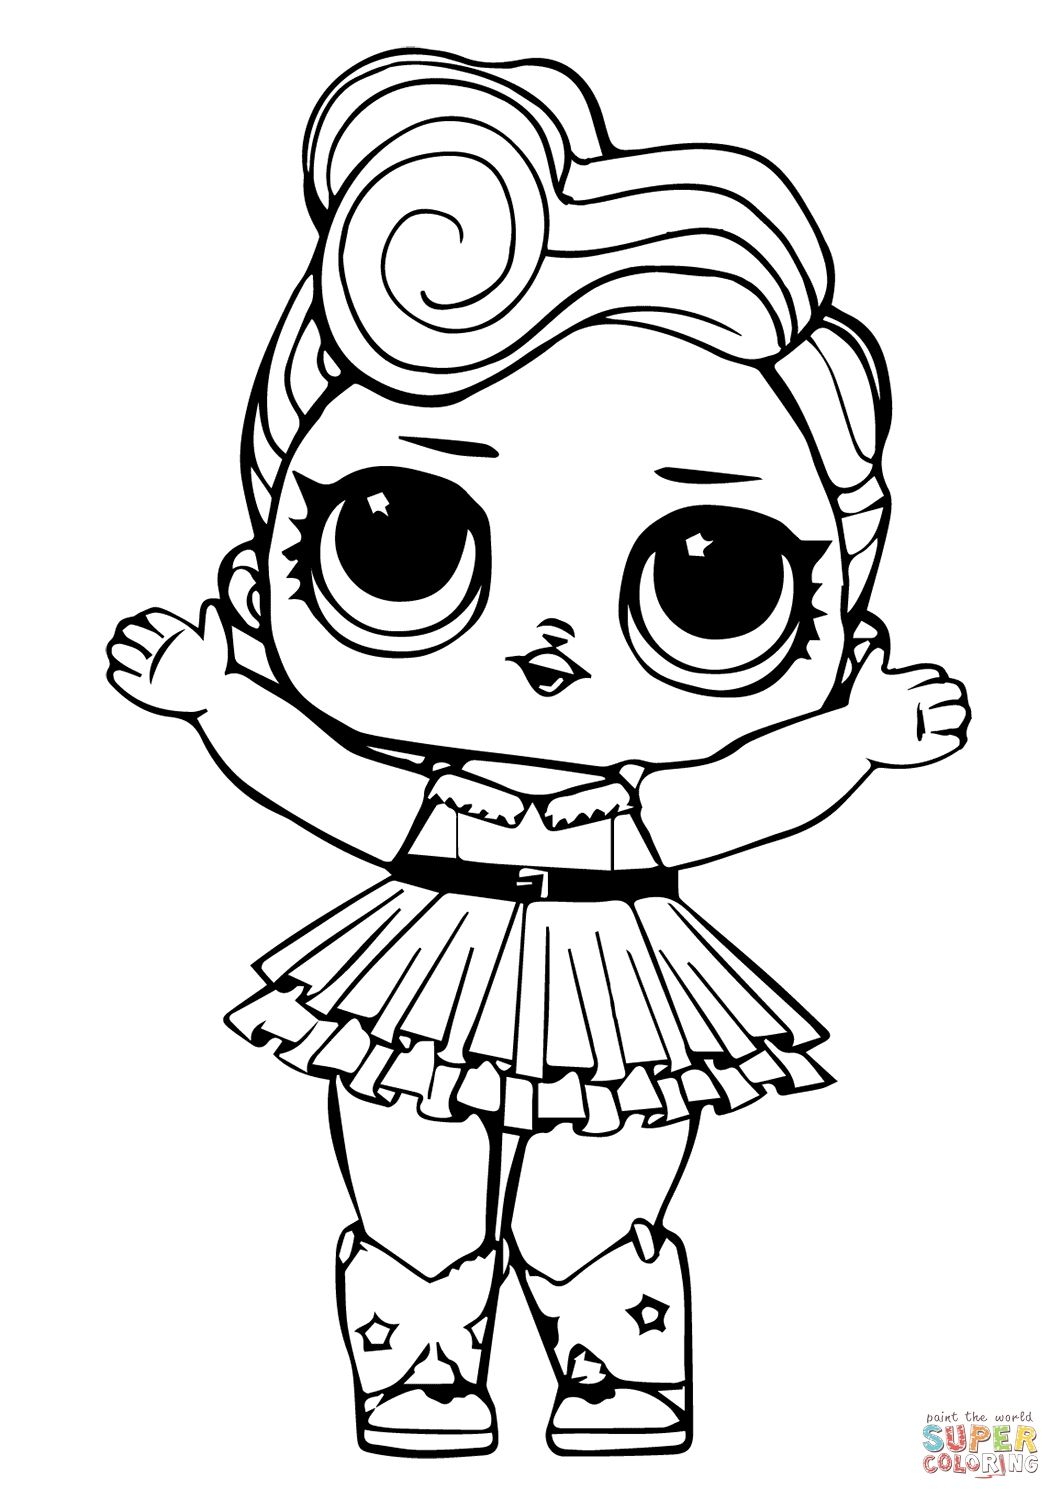 Lol Coloring Pages Black And White Coloring Pages Allow Kids To Accompany Their Favorit Unicorn Coloring Pages Animal Coloring Pages Princess Coloring Pages